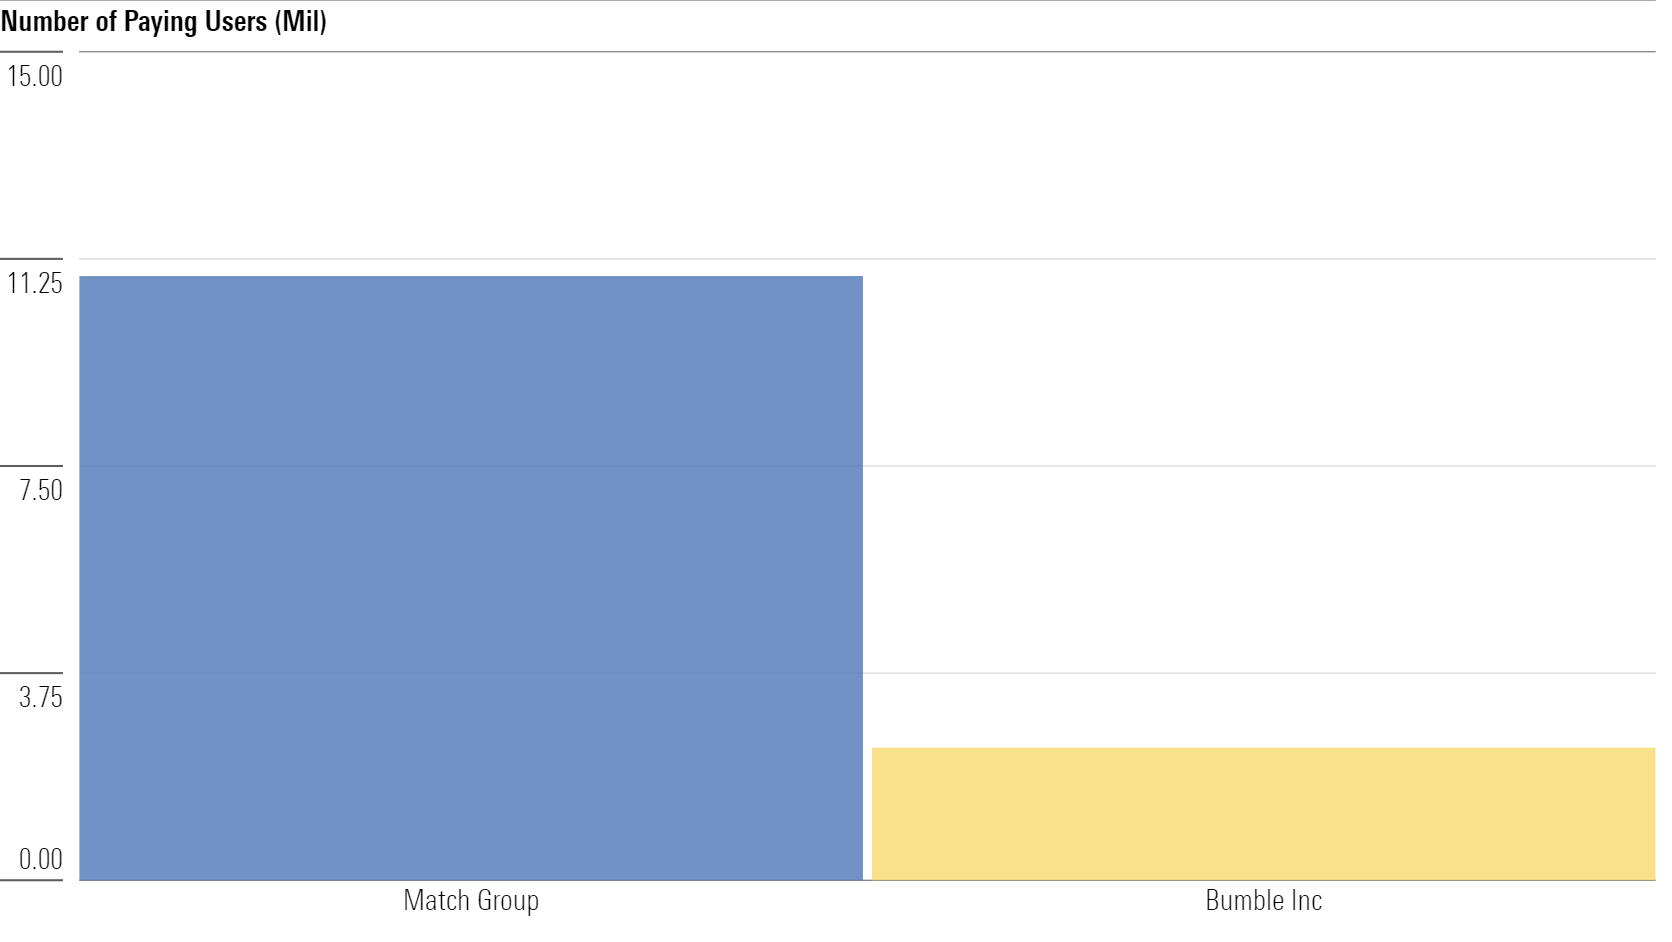 a graph showing the number of paying users on Match and Bumble